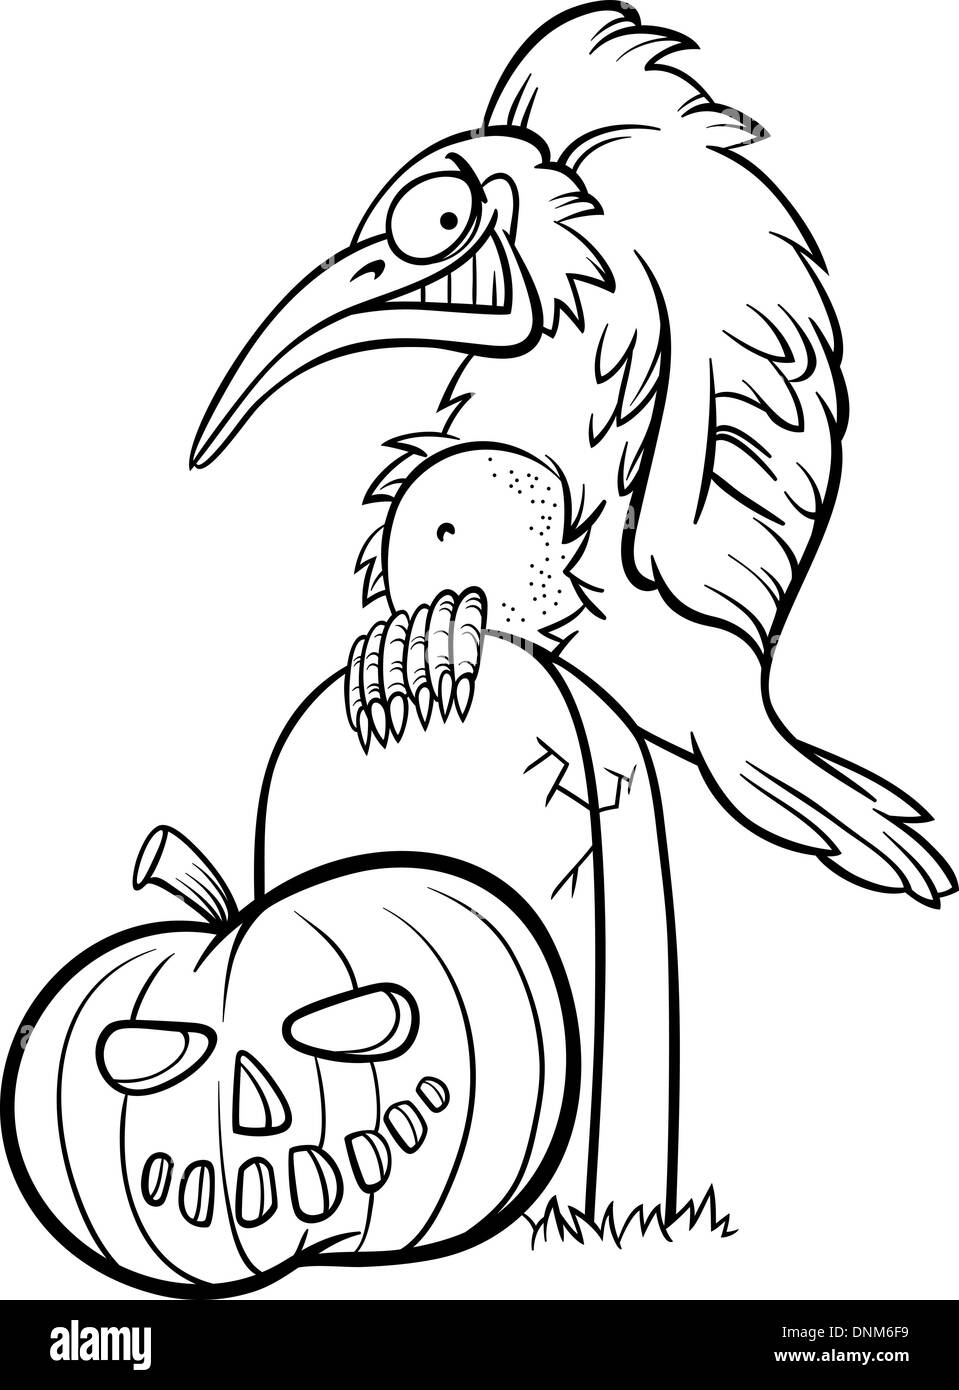 black and white cartoon illustration of spooky raven or crow on